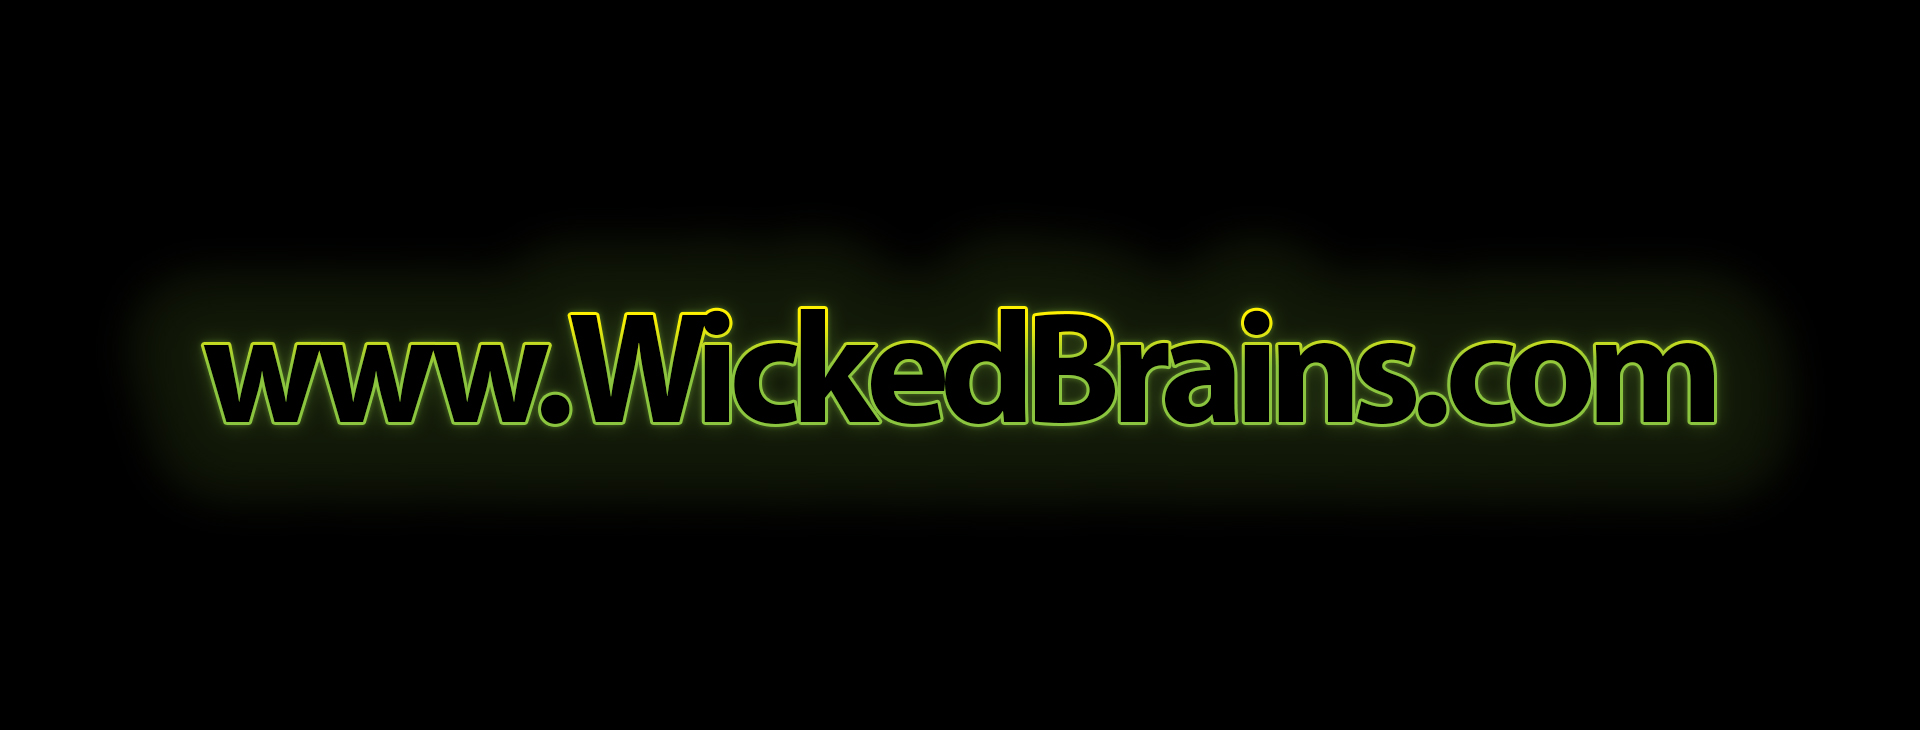 Wicked  Brains  |  Fancy  Ideas